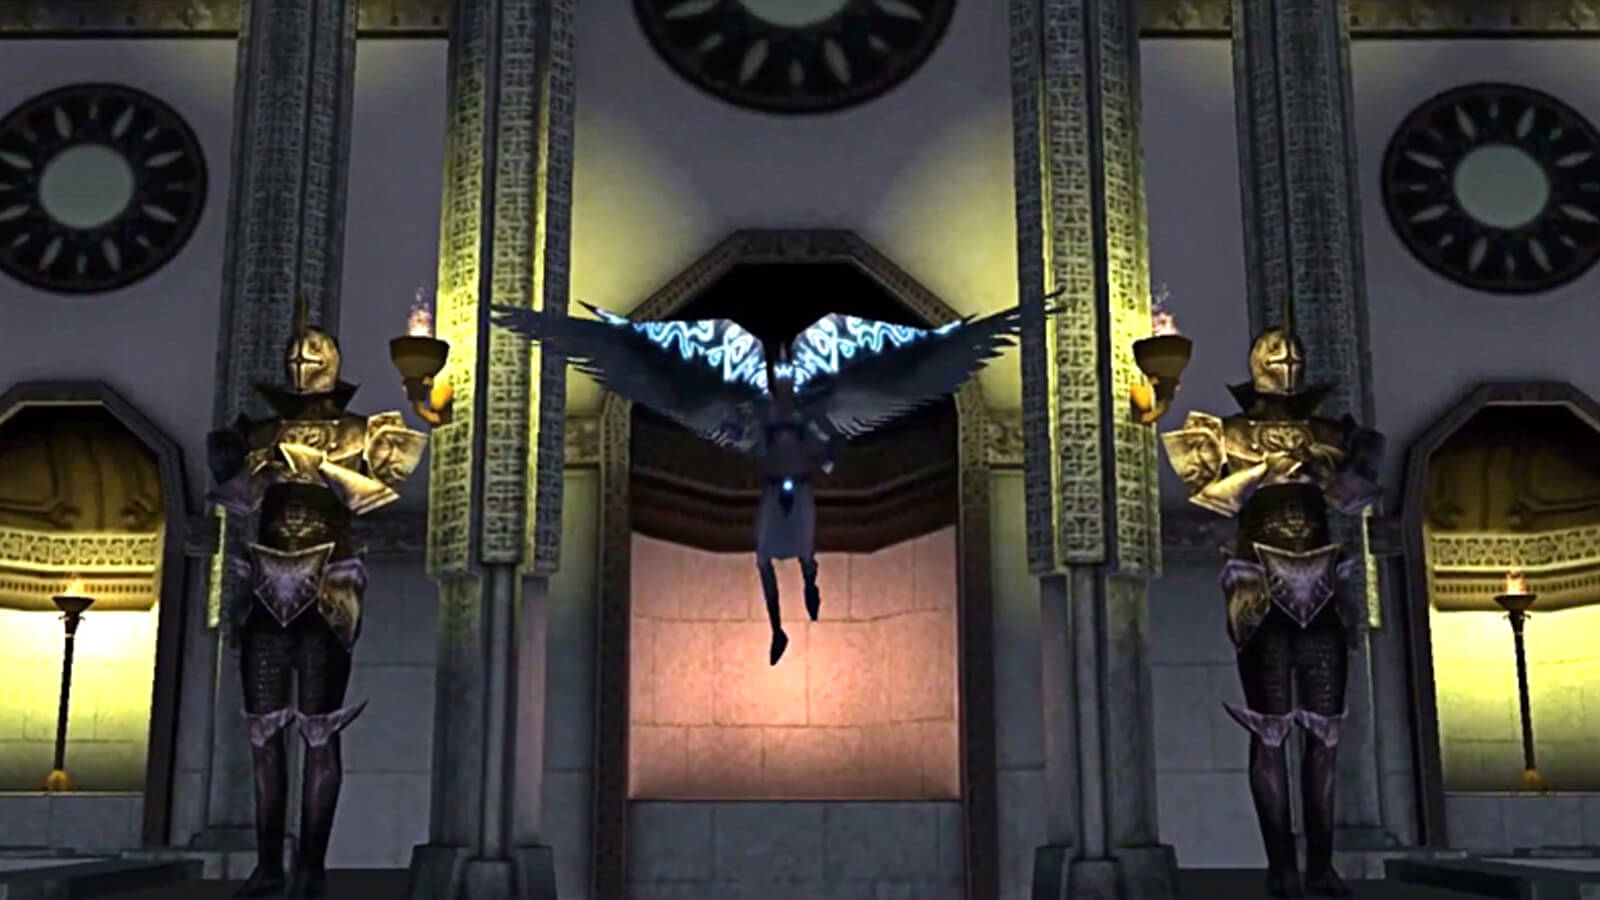 A winged supernatural being floats in front of an ornate stone edifice flanked by knights.